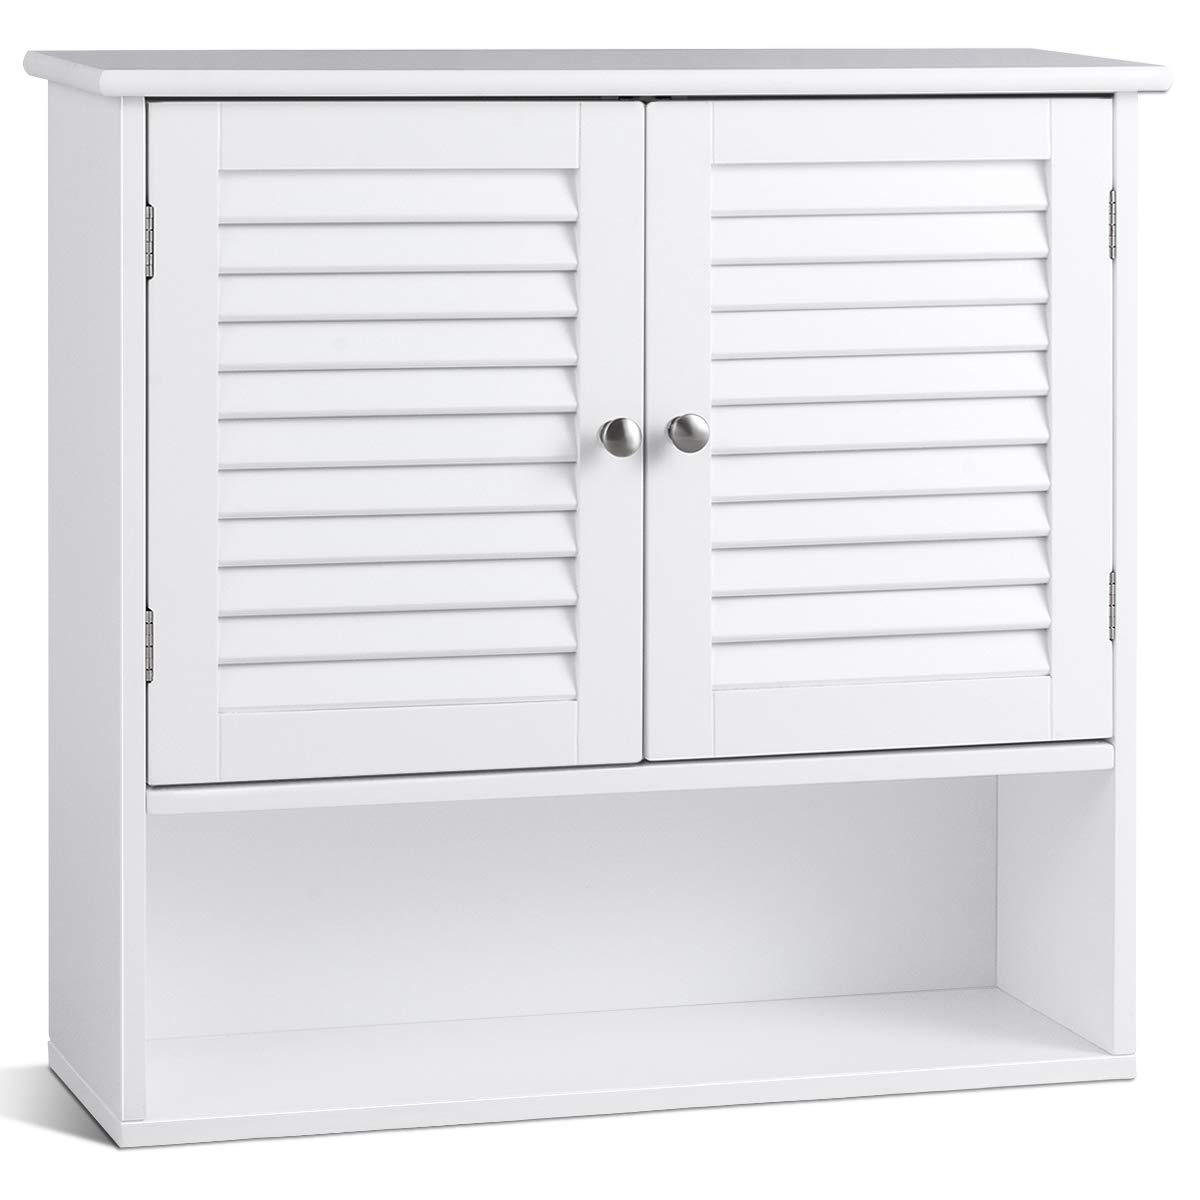 TANGKULA Wall Cabinet, Hanging Bathroom Medicine Cabinet with Double Shutter Doors and Adjustable Shelf, 26 x 8.5 x 25 Inches, White by Tangkula